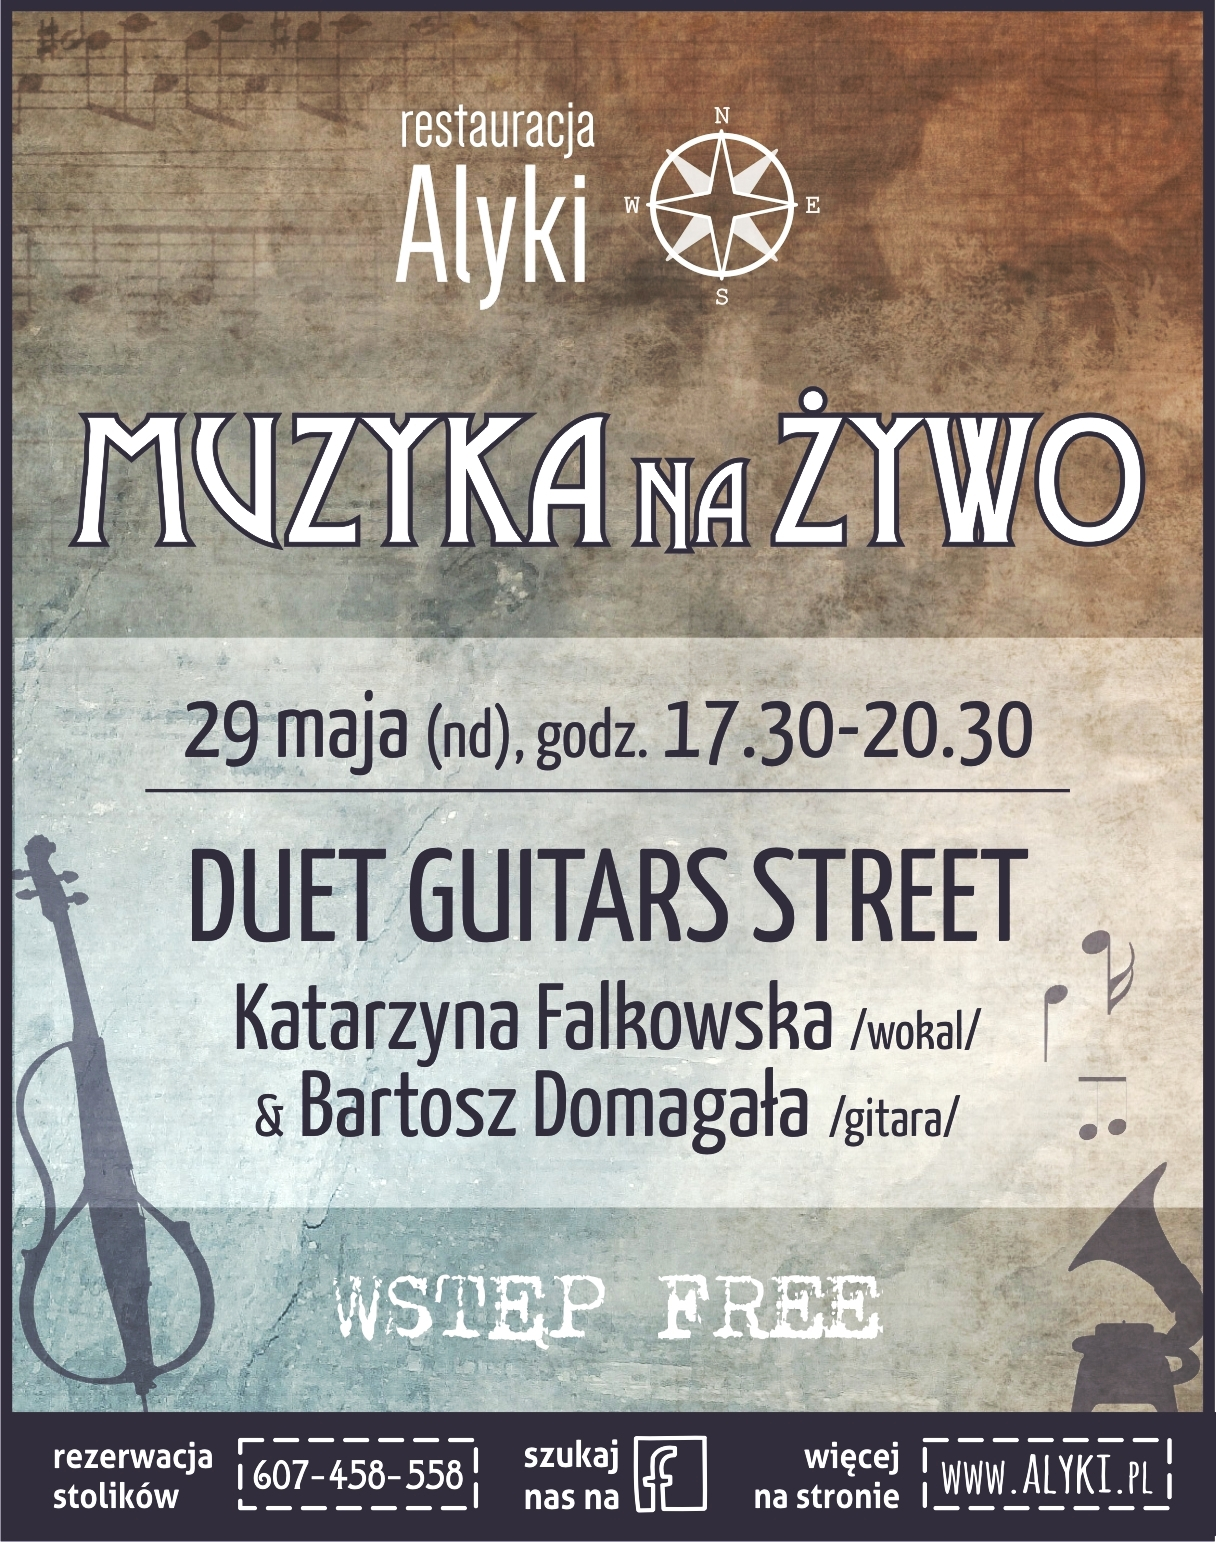 Duet Guitars Street w restauracji Alyki Sky Tower